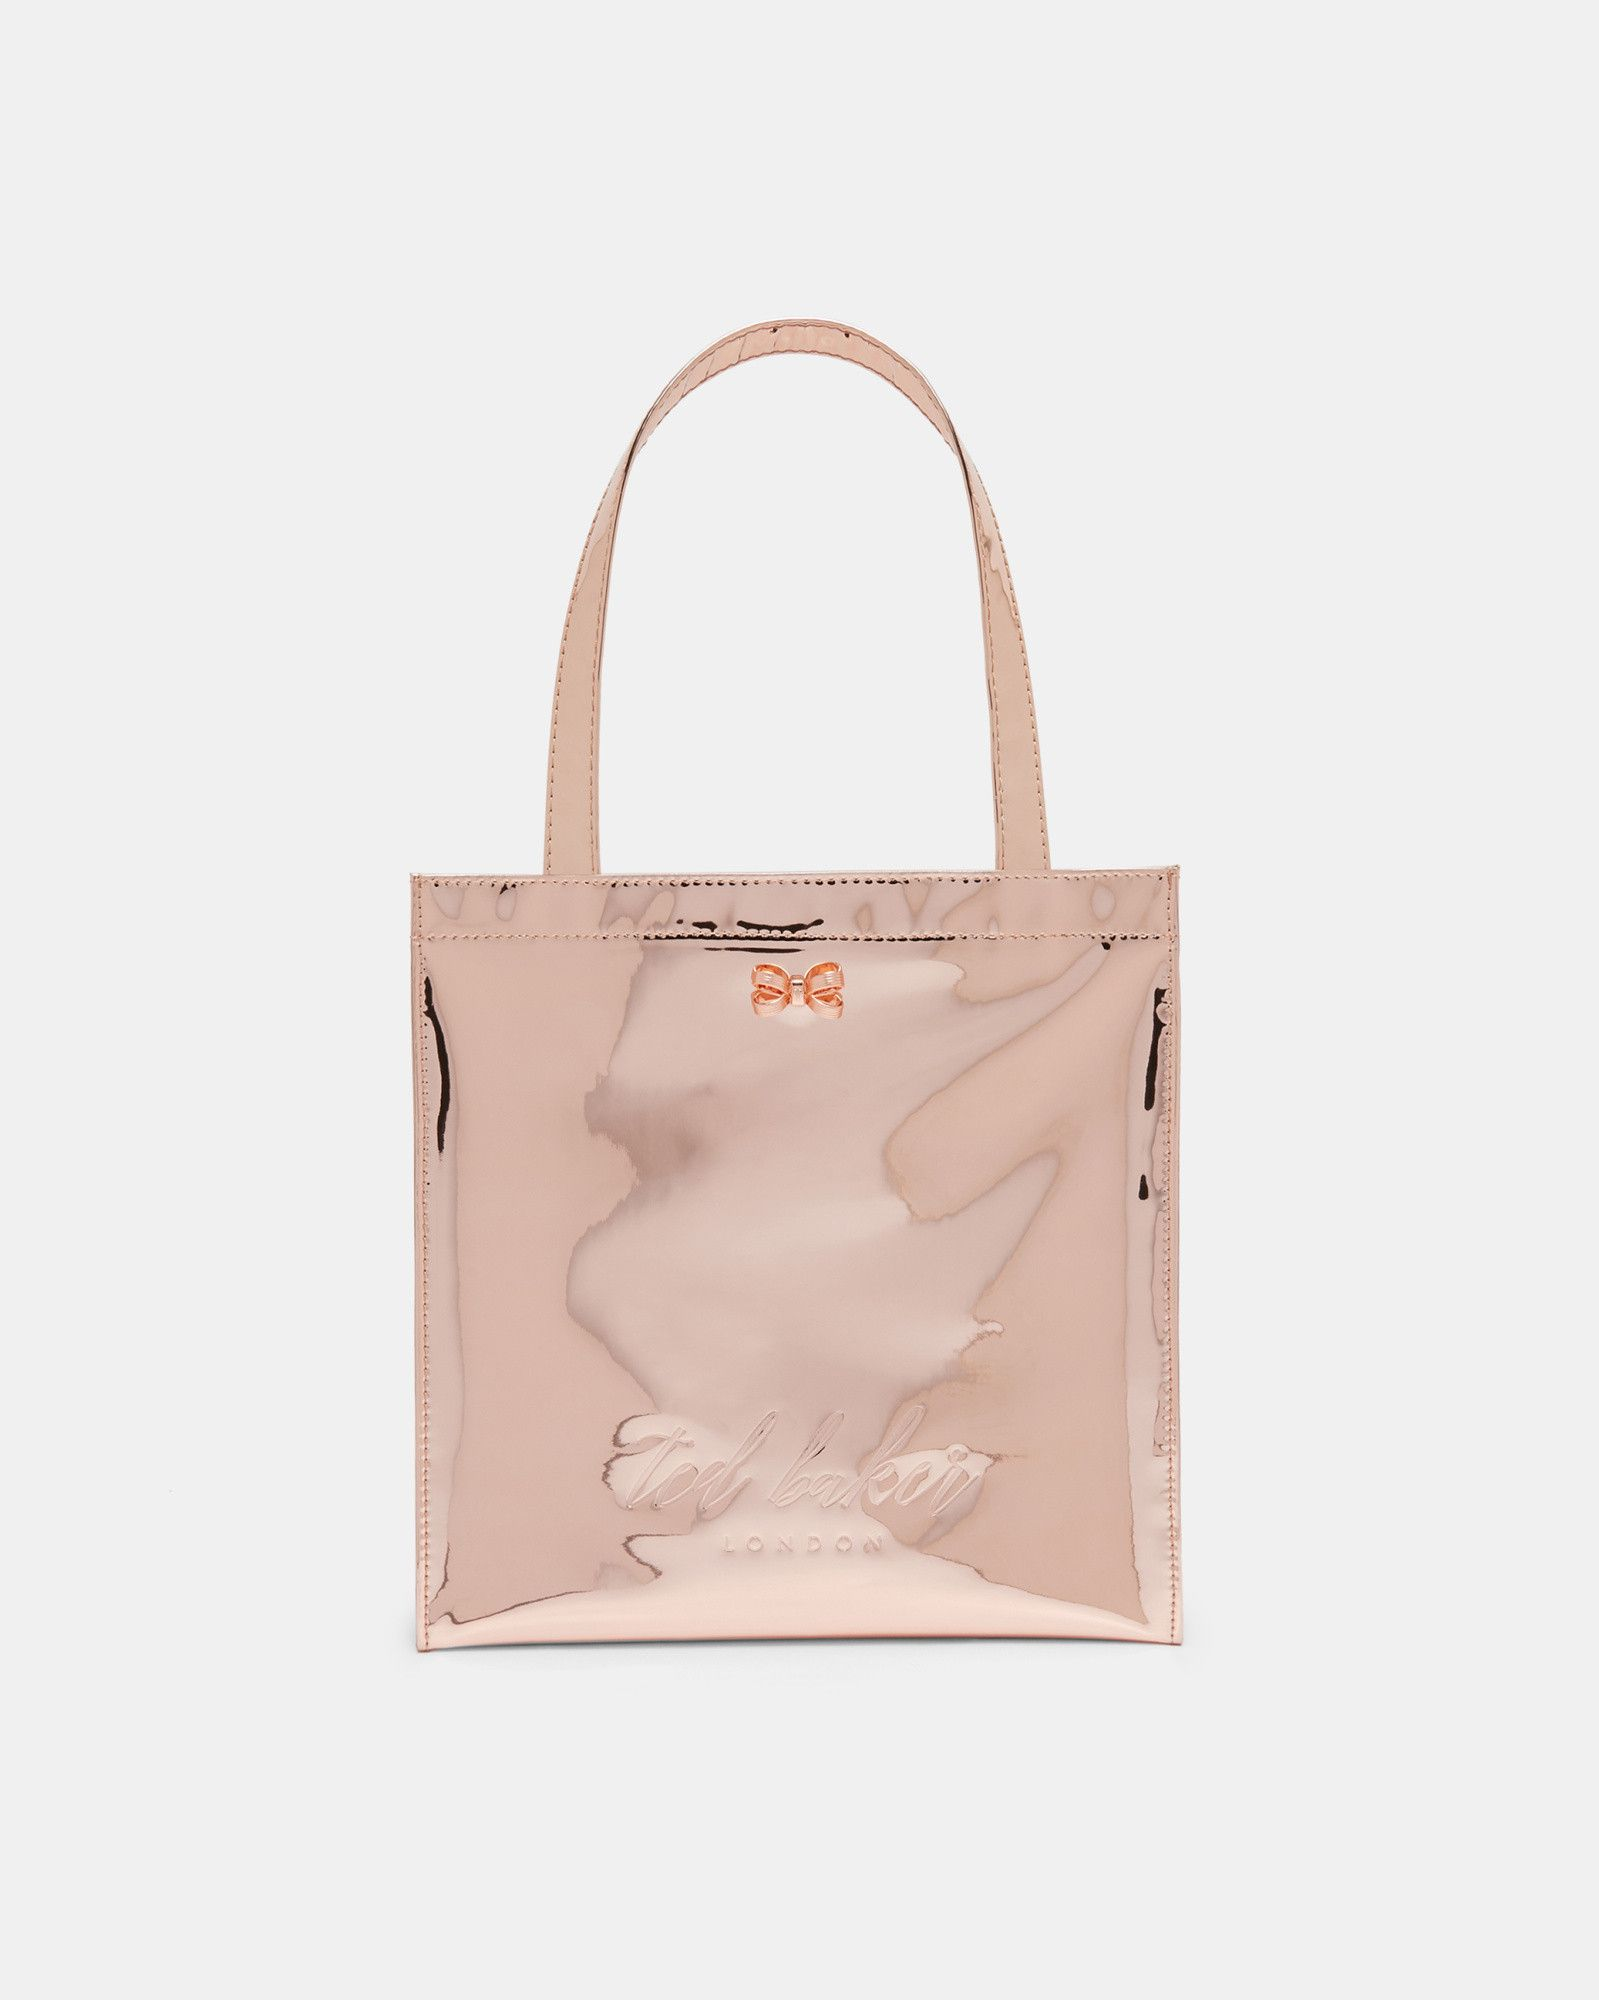 3ef089e08d Ted Baker Small mirrored icon bag Rose Gold